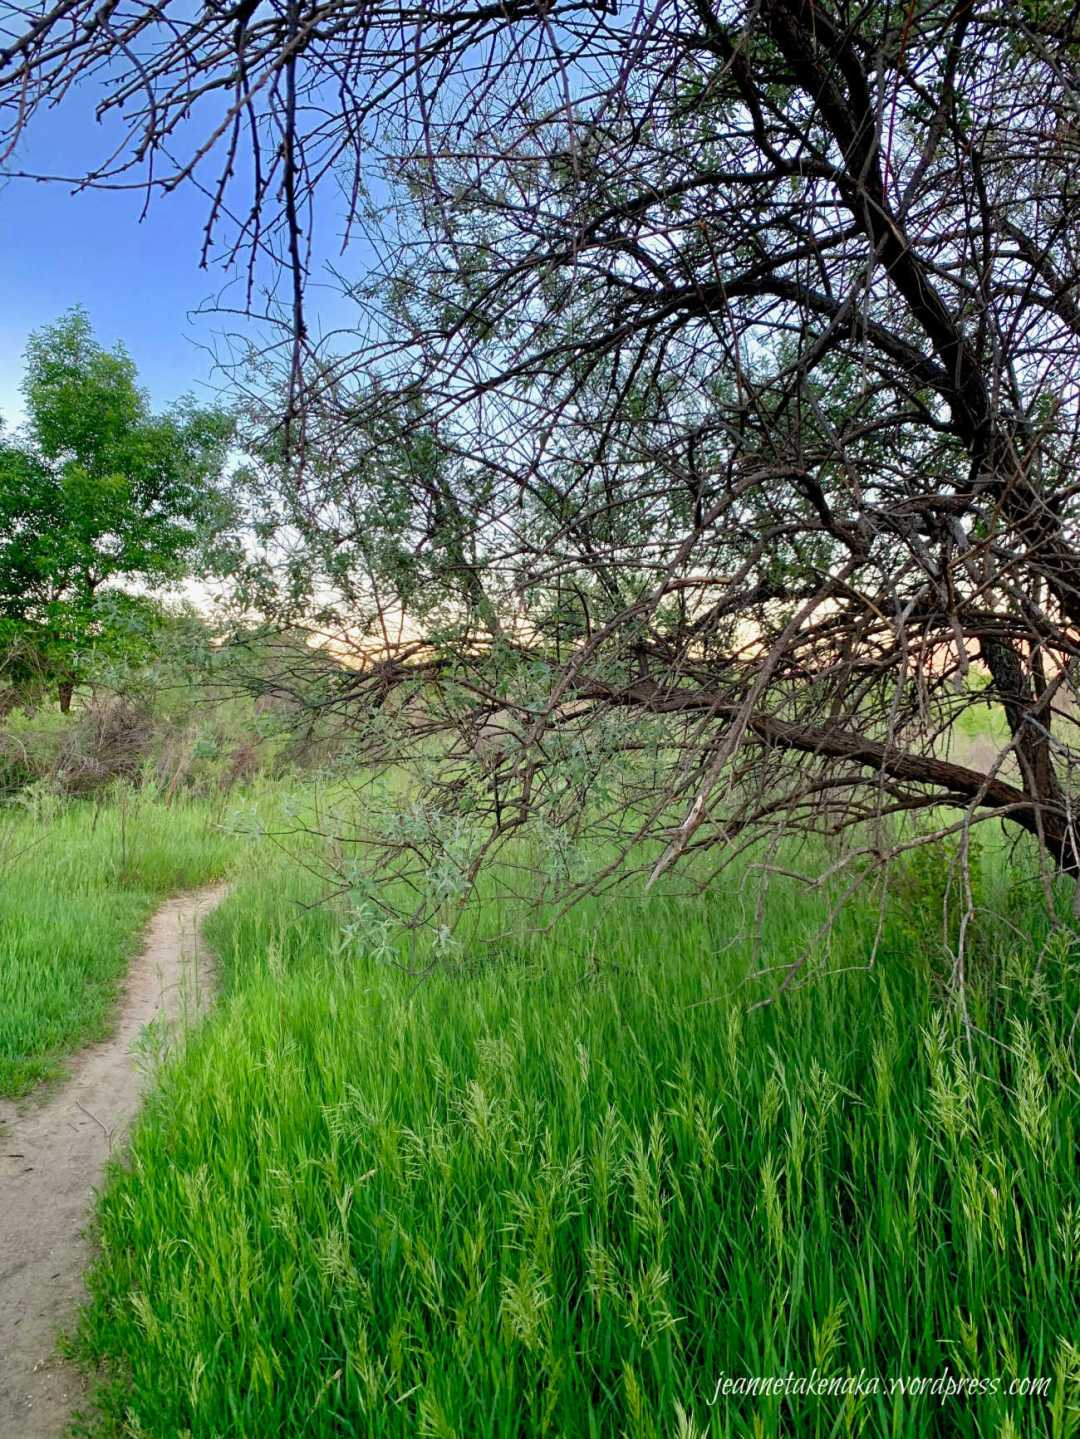 A small path leading between grasses and trees